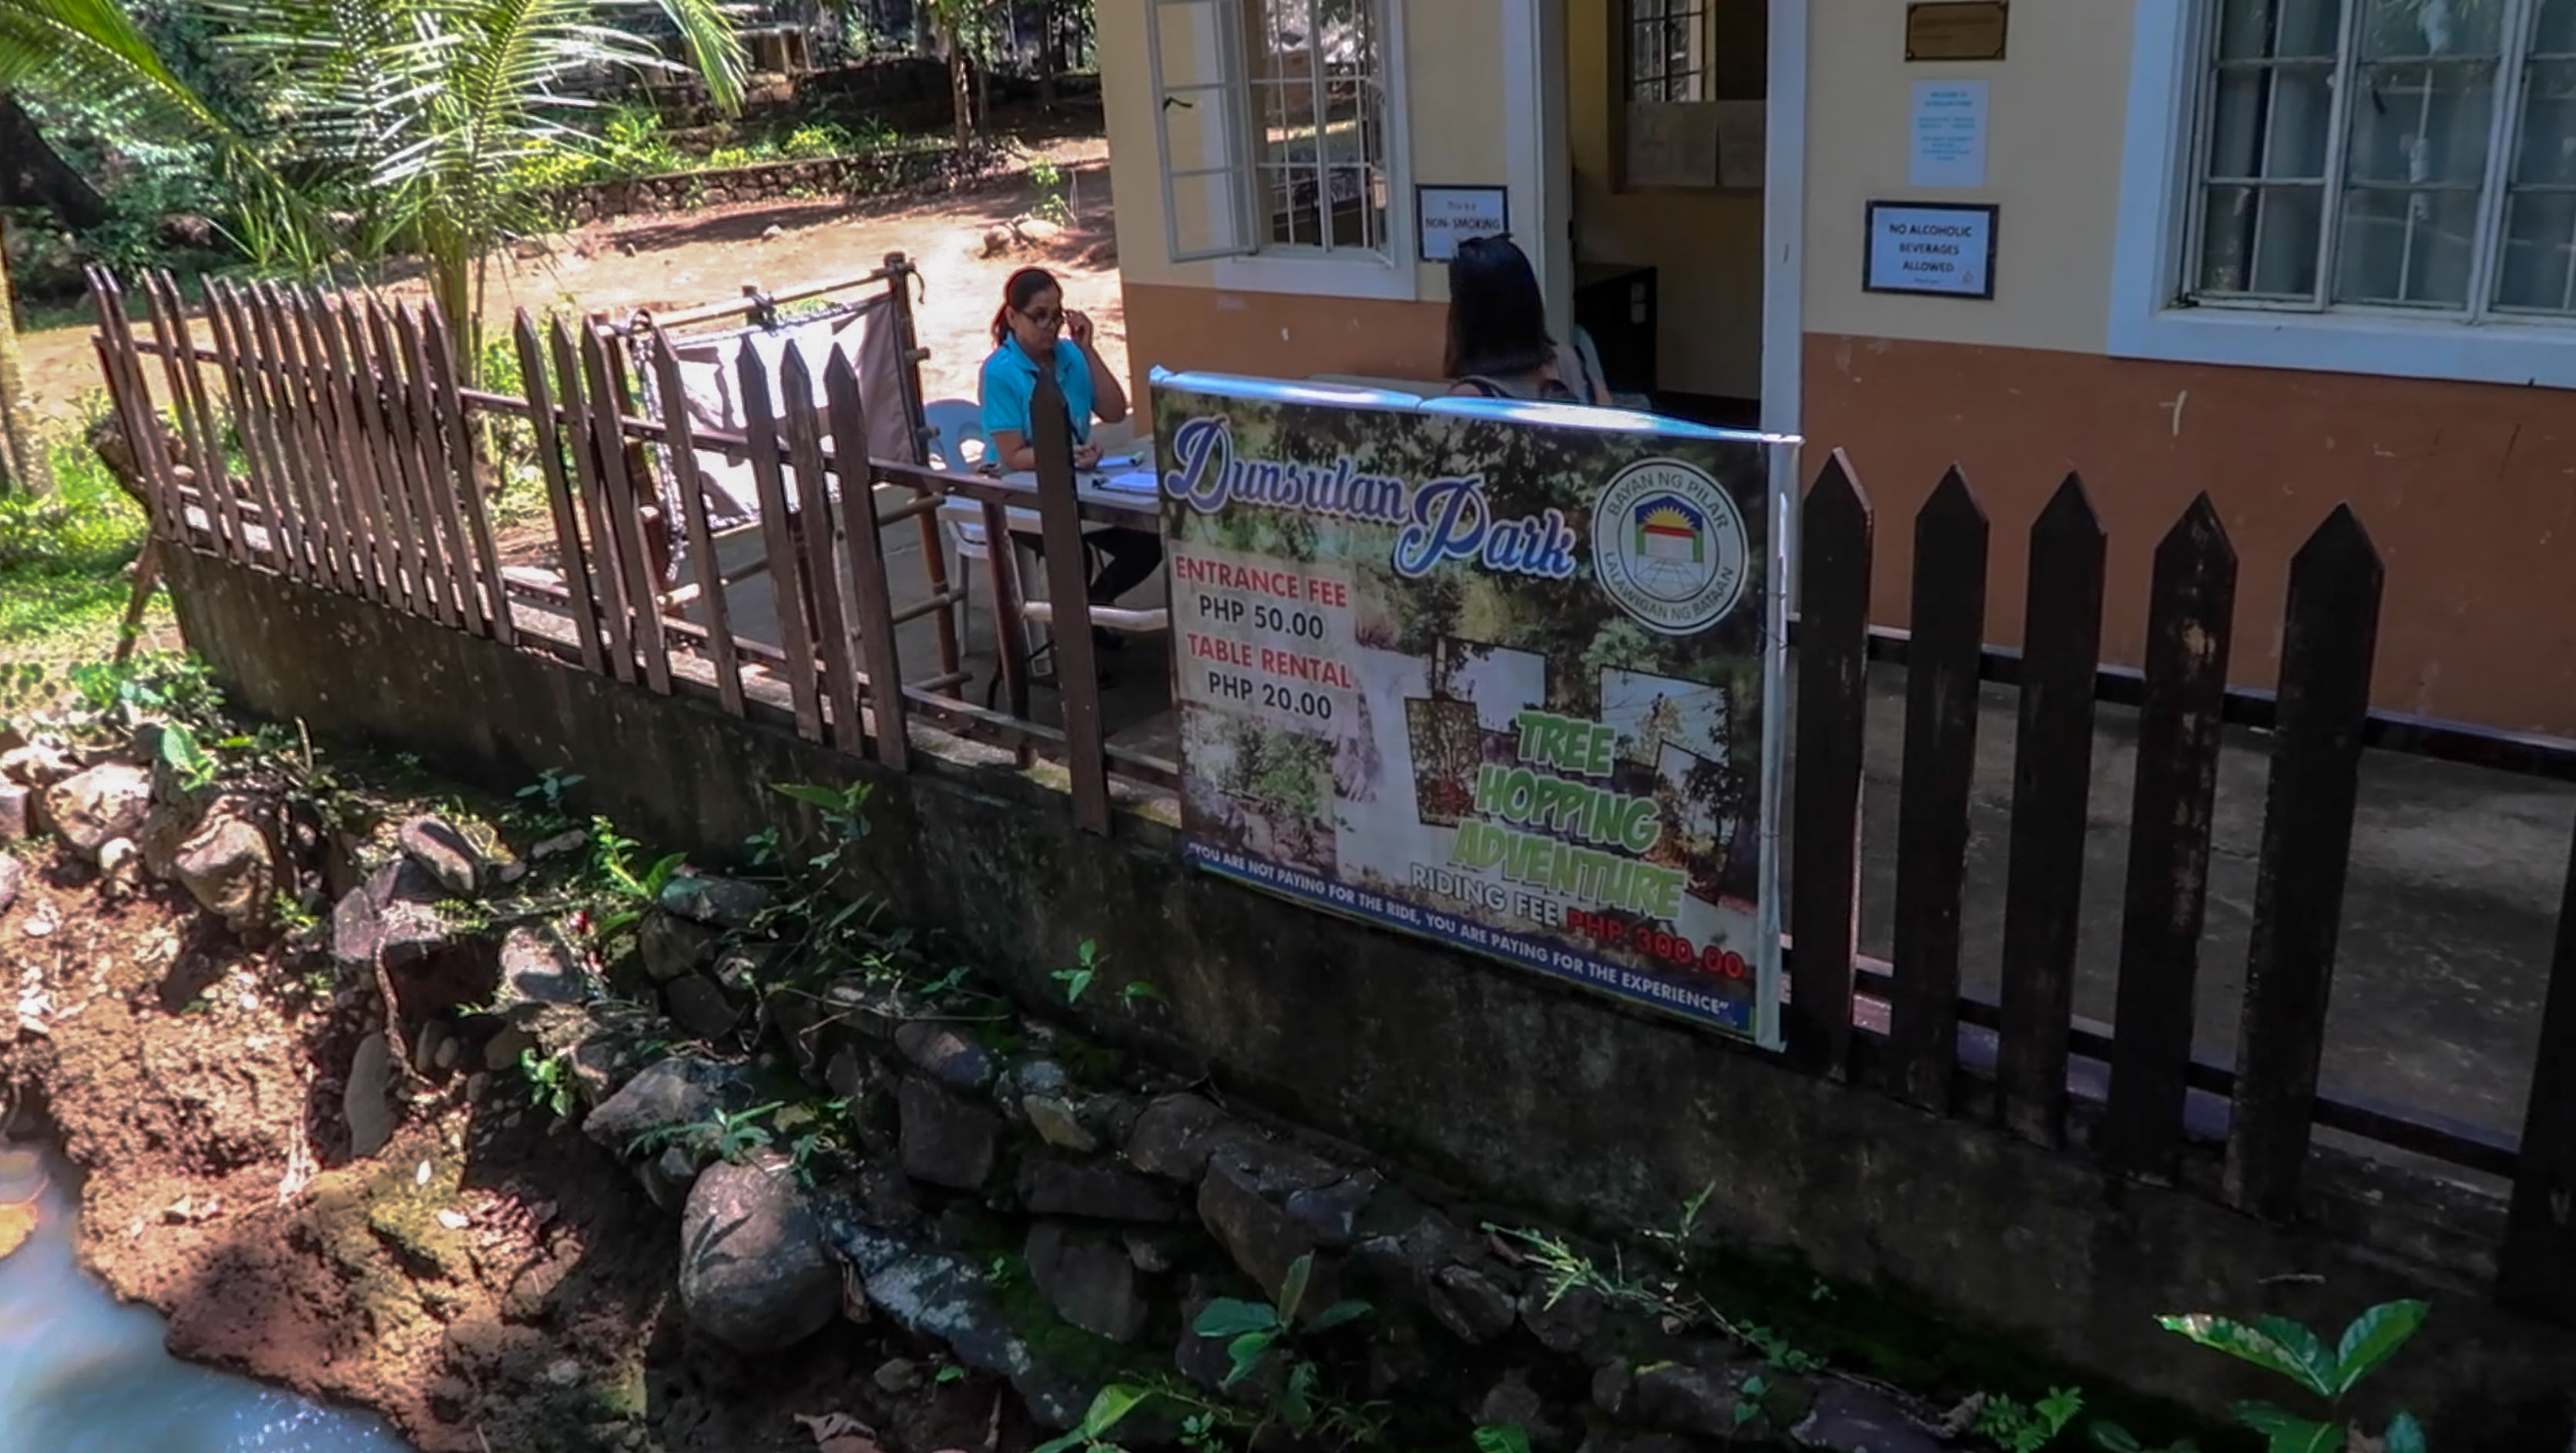 entrance and administration house of dunsulan falls in bataan philippines